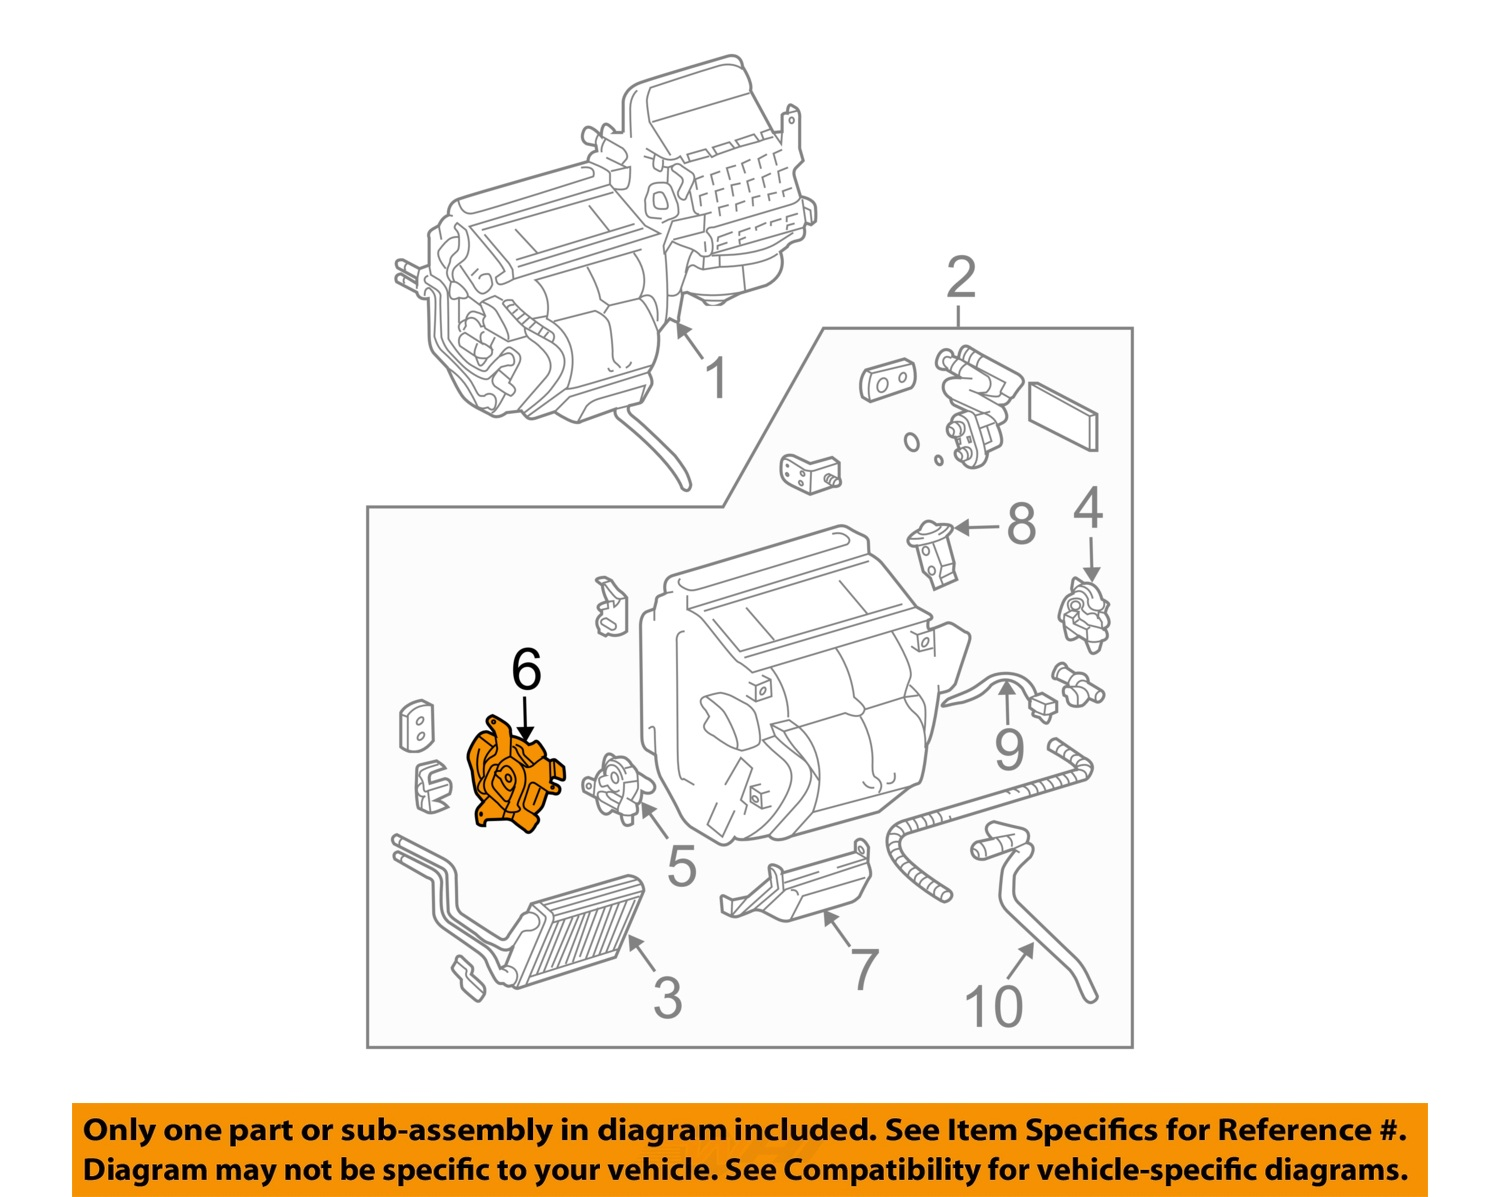 Nissan 3 5l Engine Diagram Guide And Troubleshooting Of Wiring Chrysler V6 Unlimited Access To Rh Ijirc Com 35 Diagrams Pacifica 35l